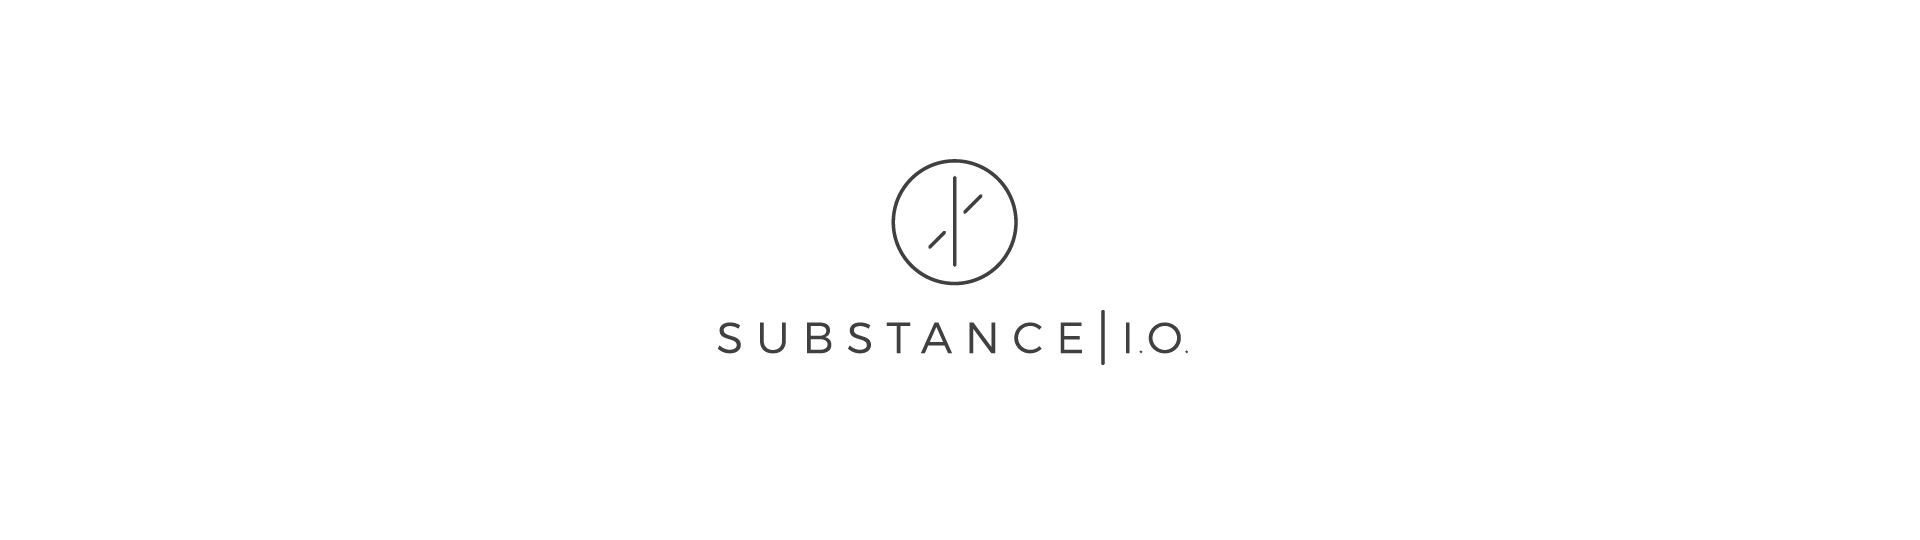 substance_io-01.png